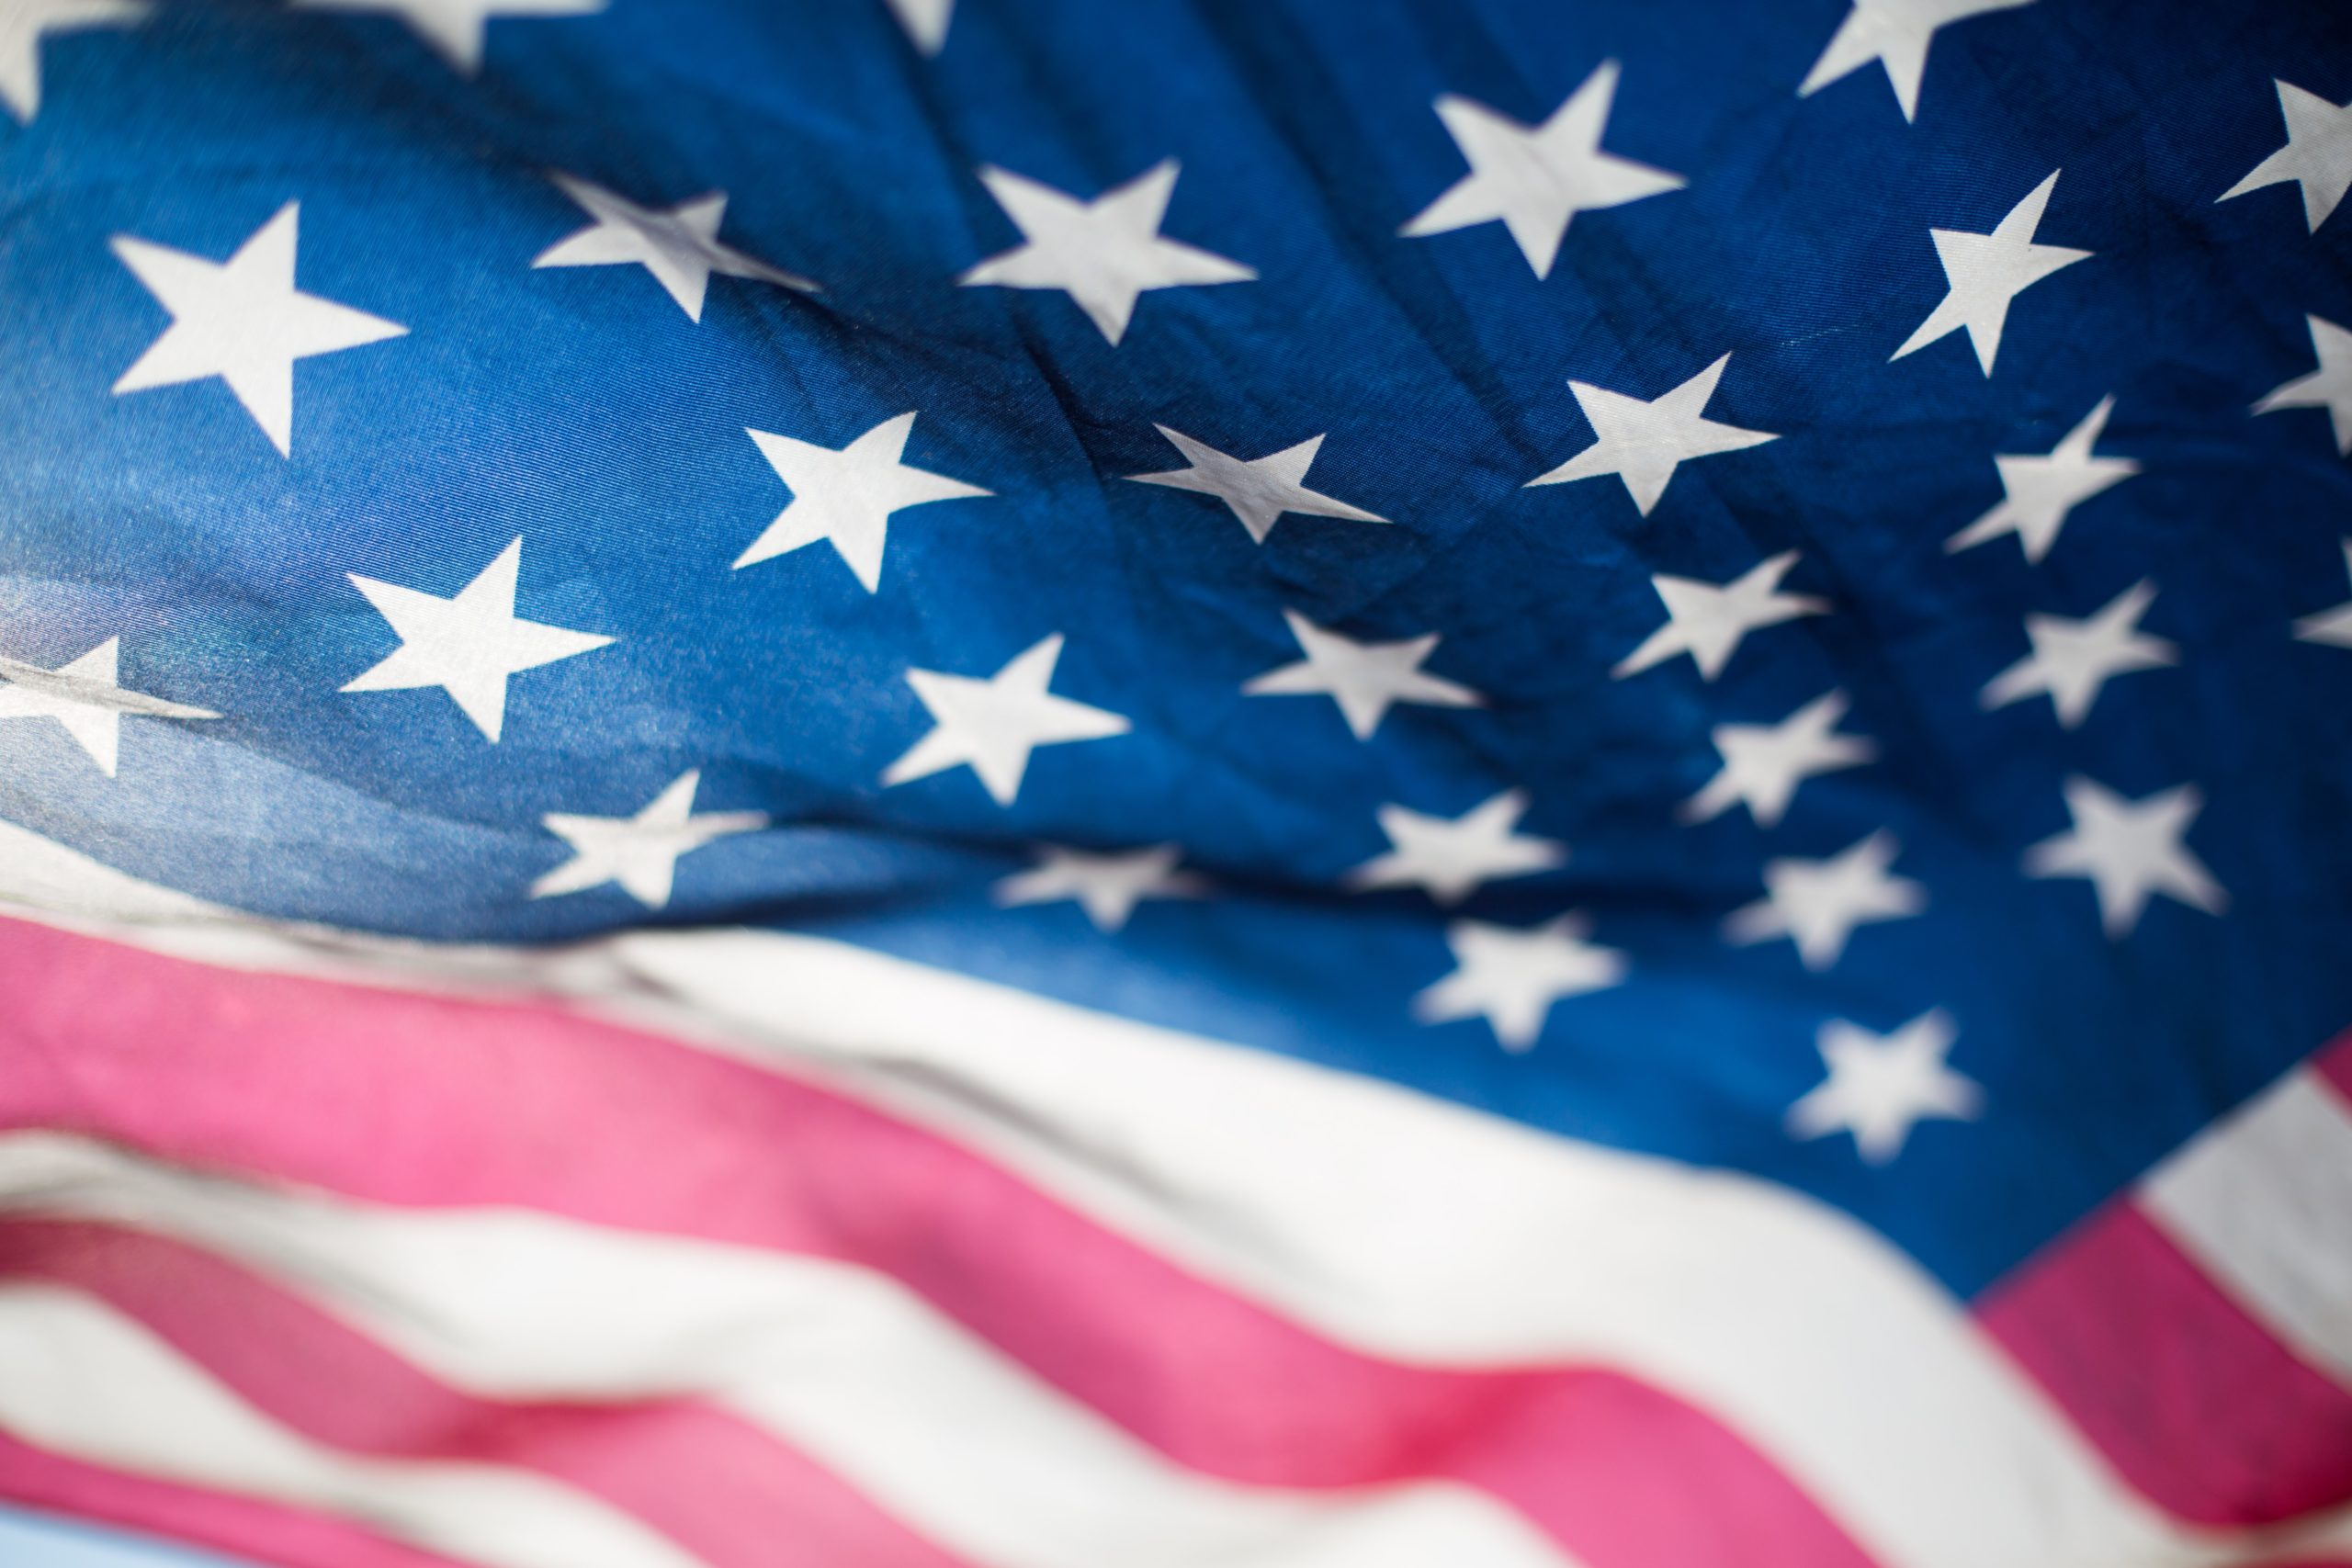 Your Brand's Guide to Advertising During Military Appreciation Month